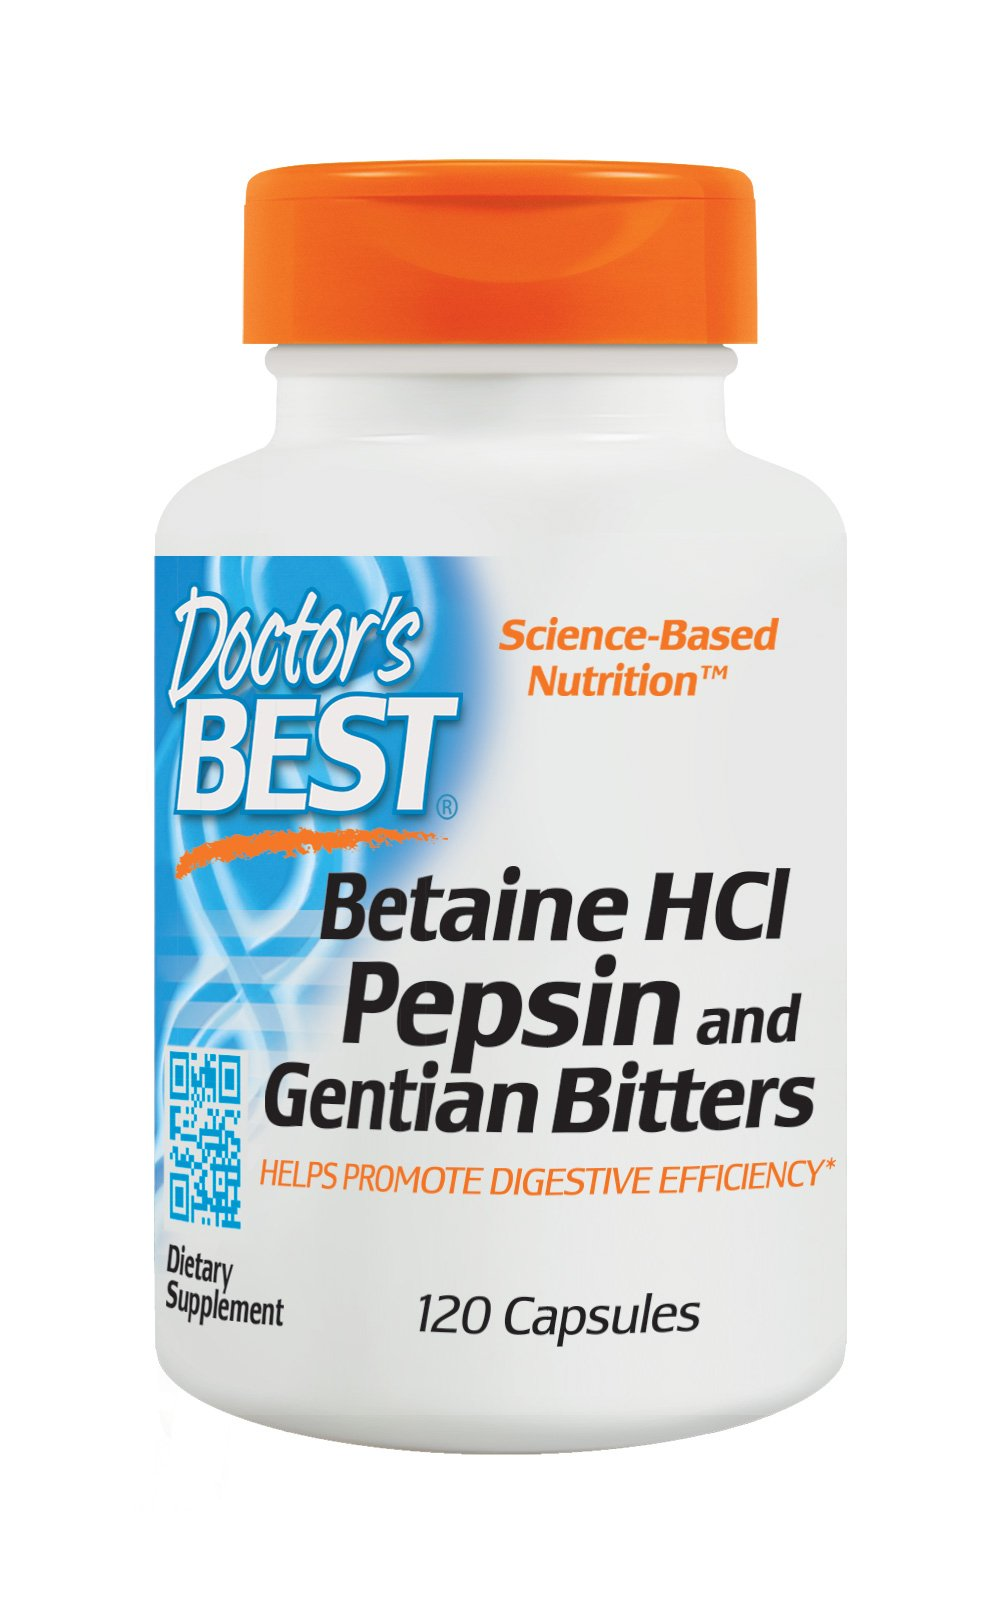 Doctor's Best Betaine HCI Pepsin and Gentian Bitters, Non-GMO, Gluten Free, Digestion Support, 120 Caps